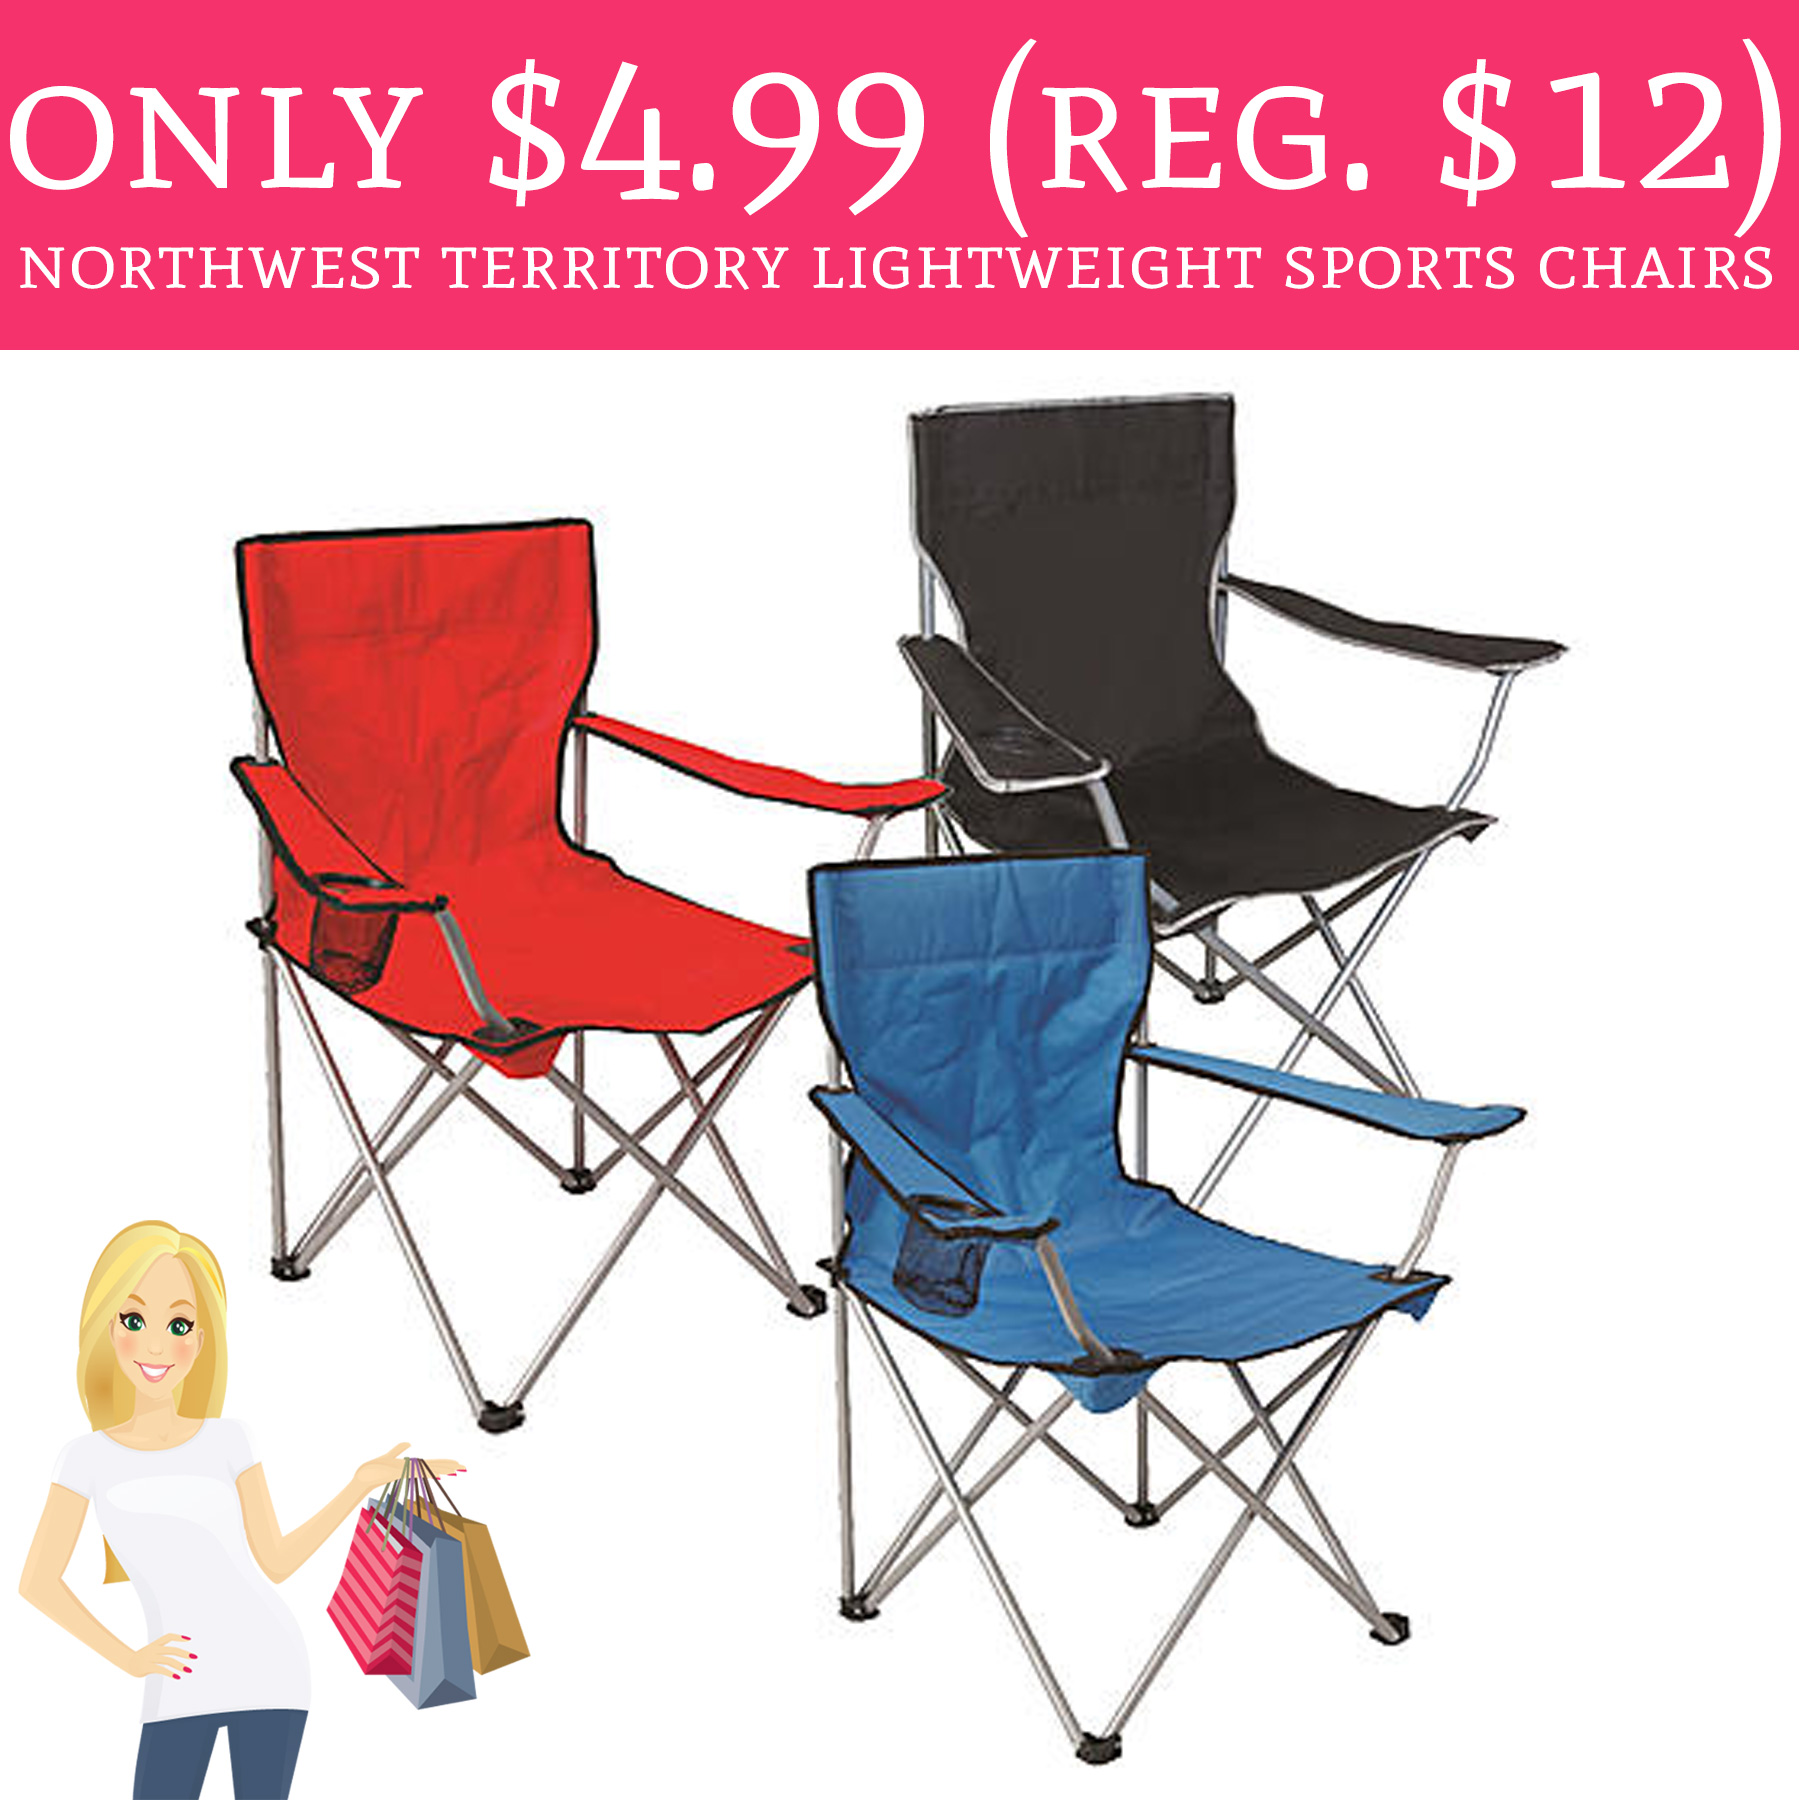 Perfect for Summer!  sc 1 st  Deal Hunting Babe & Only $4.99 (Regular $12) Northwest Territory Lightweight Sports ...